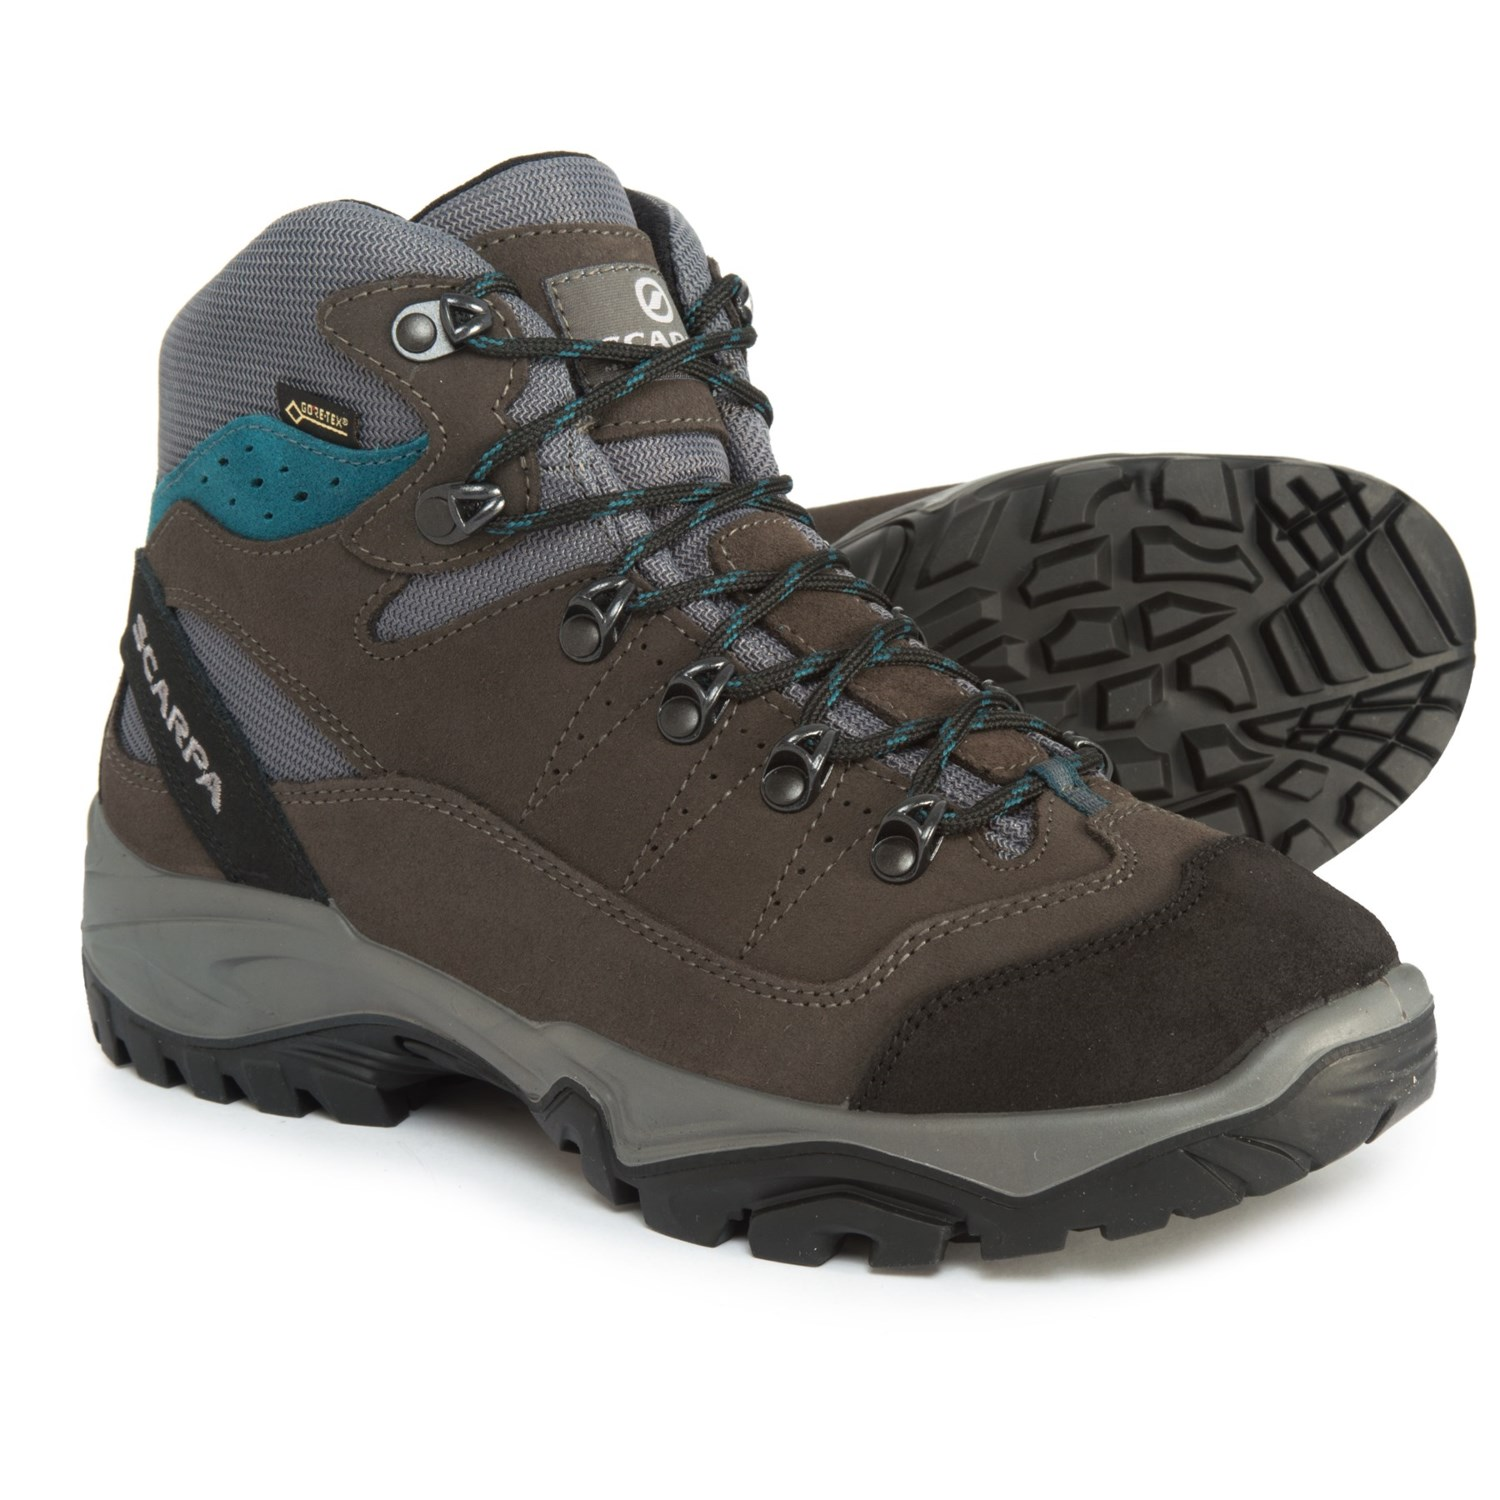 9563a508384 Scarpa Made in Europe Mistral Gore-Tex® Hiking Boots - Waterproof (For Men)